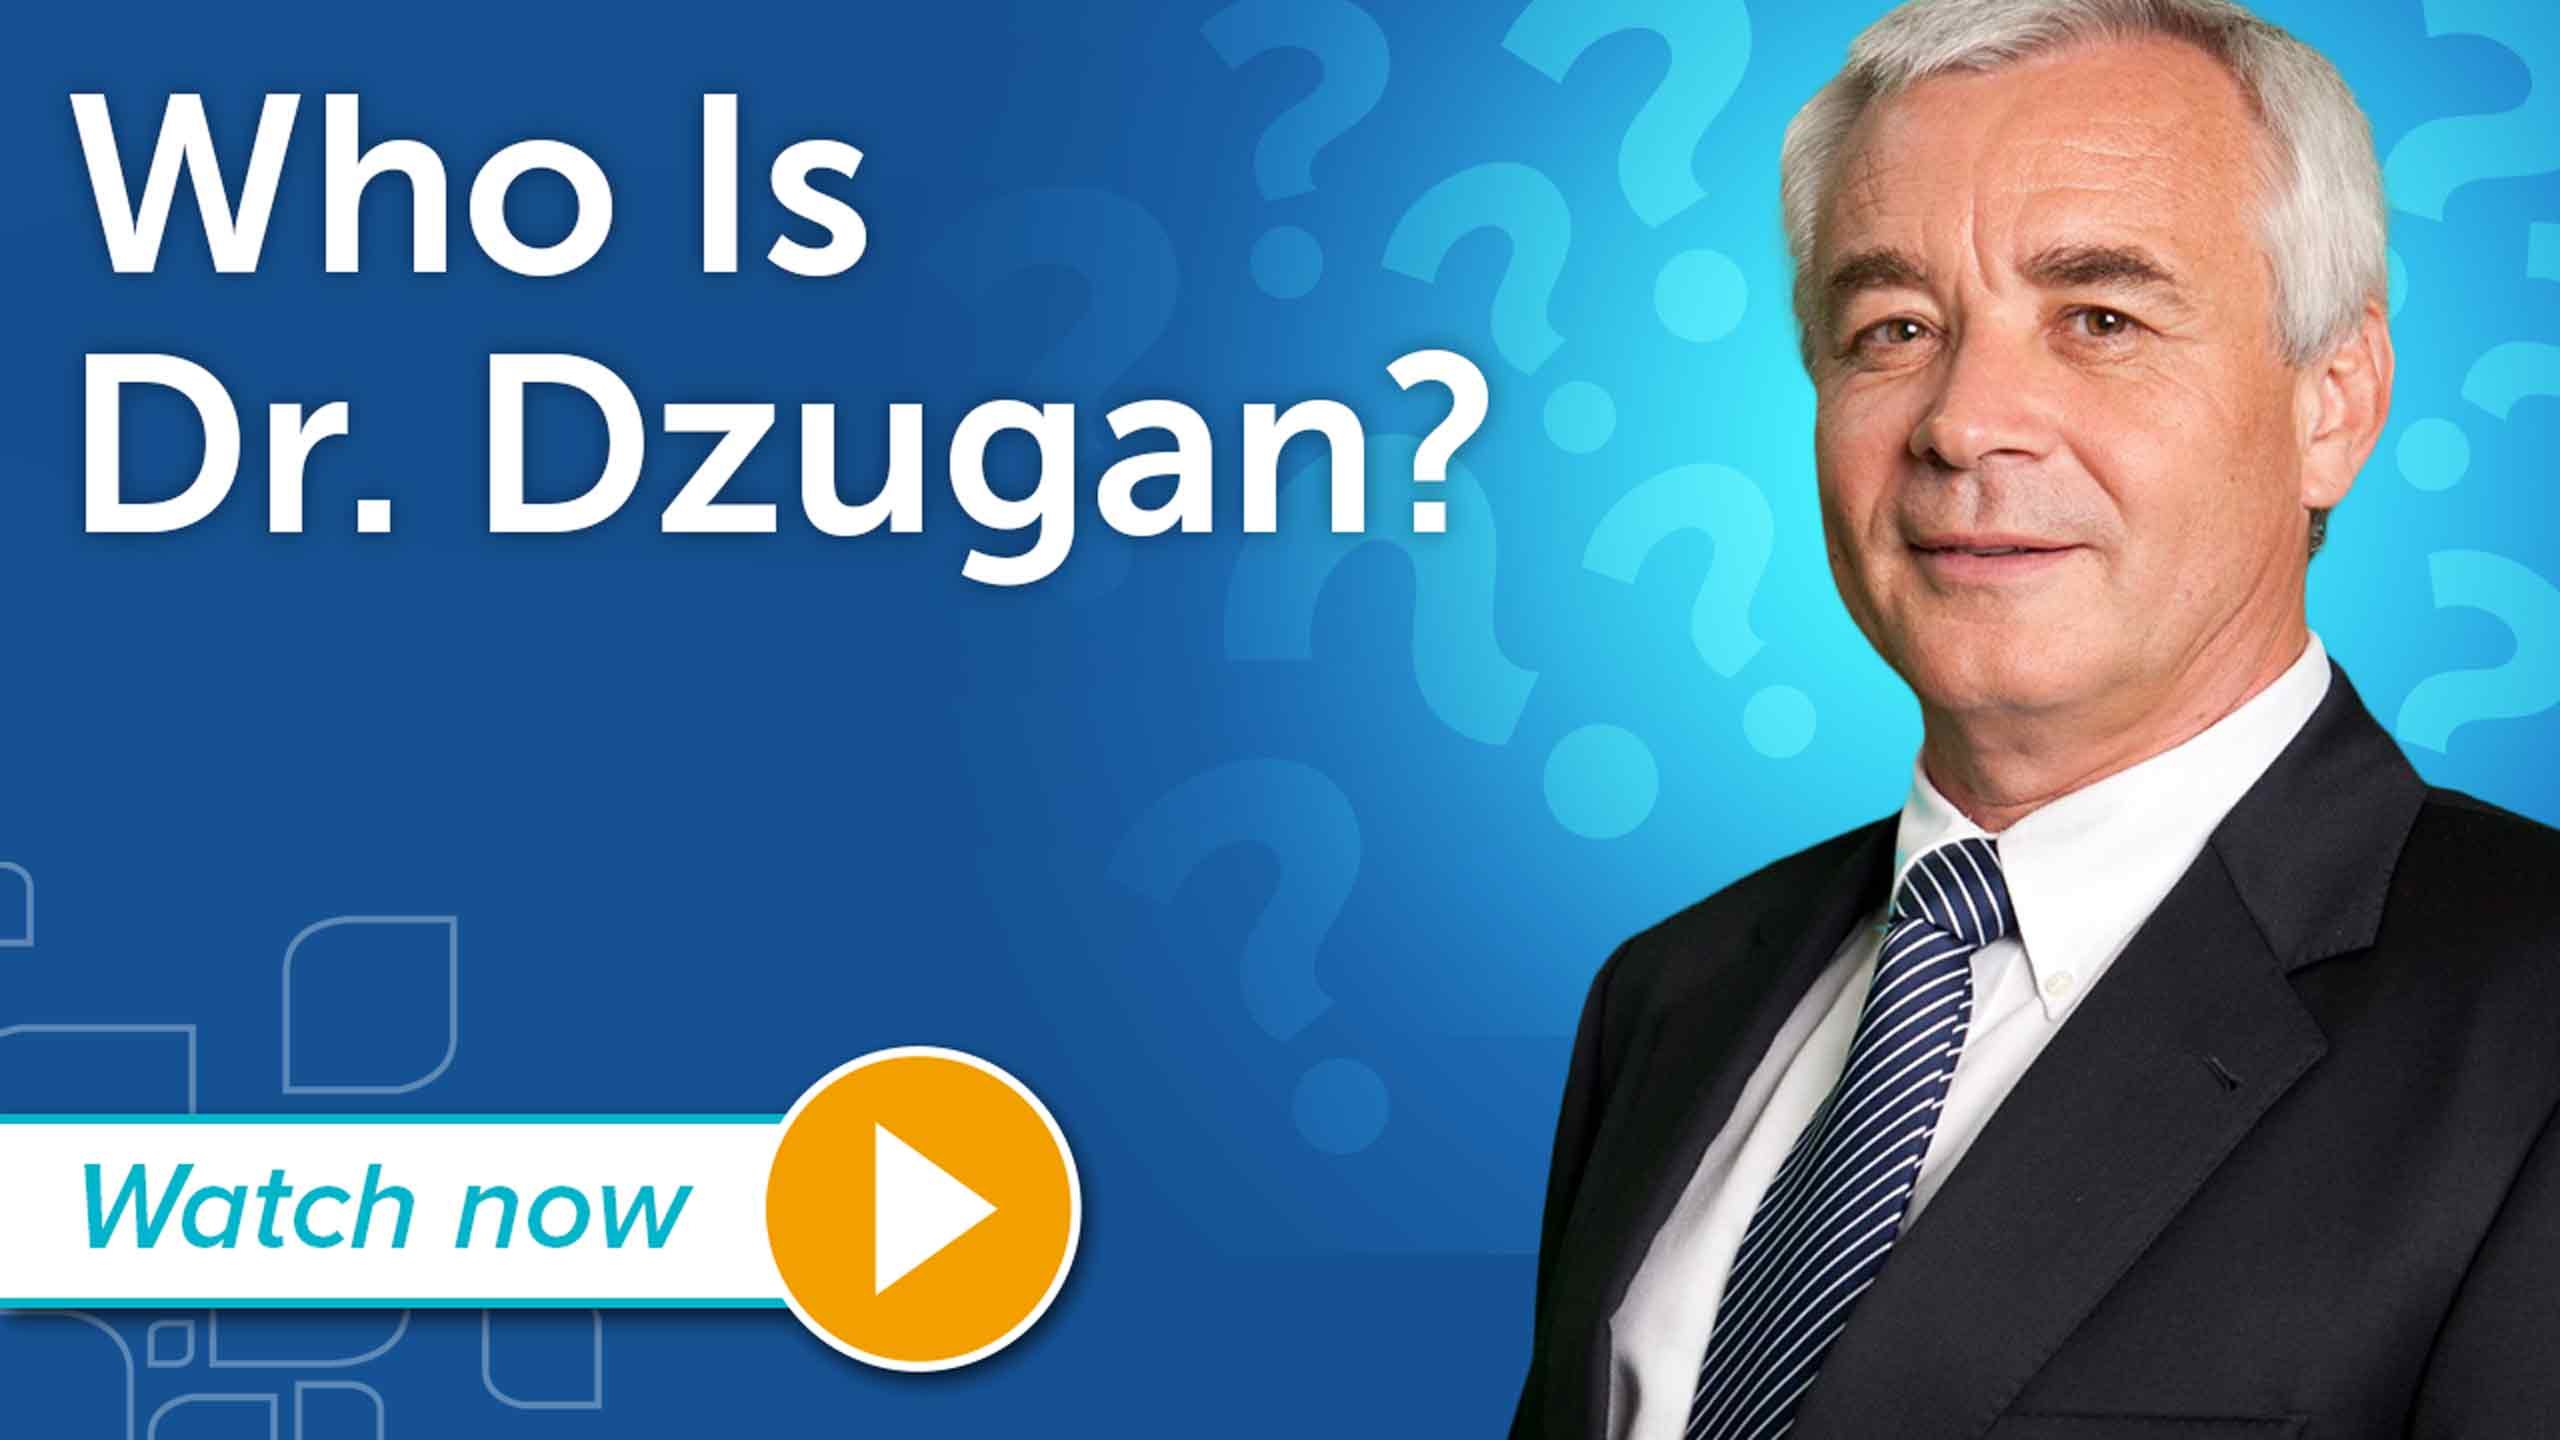 Who is Dr. Dzugan?